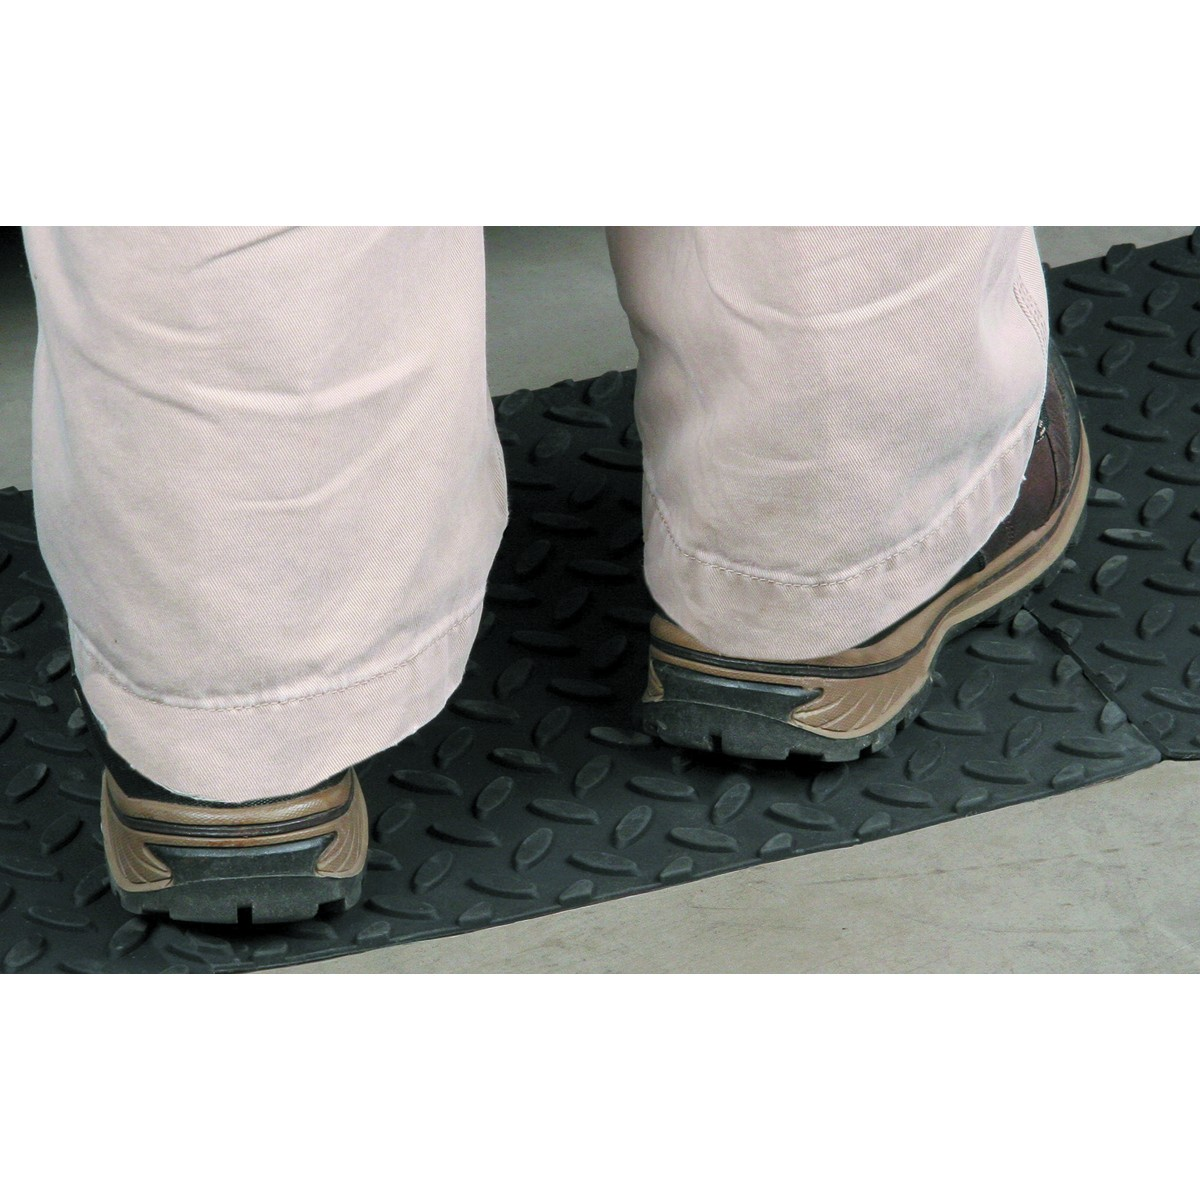 12 in. x 12 in. Self-Adhesive Rubber Safety Mat with Tread Surface